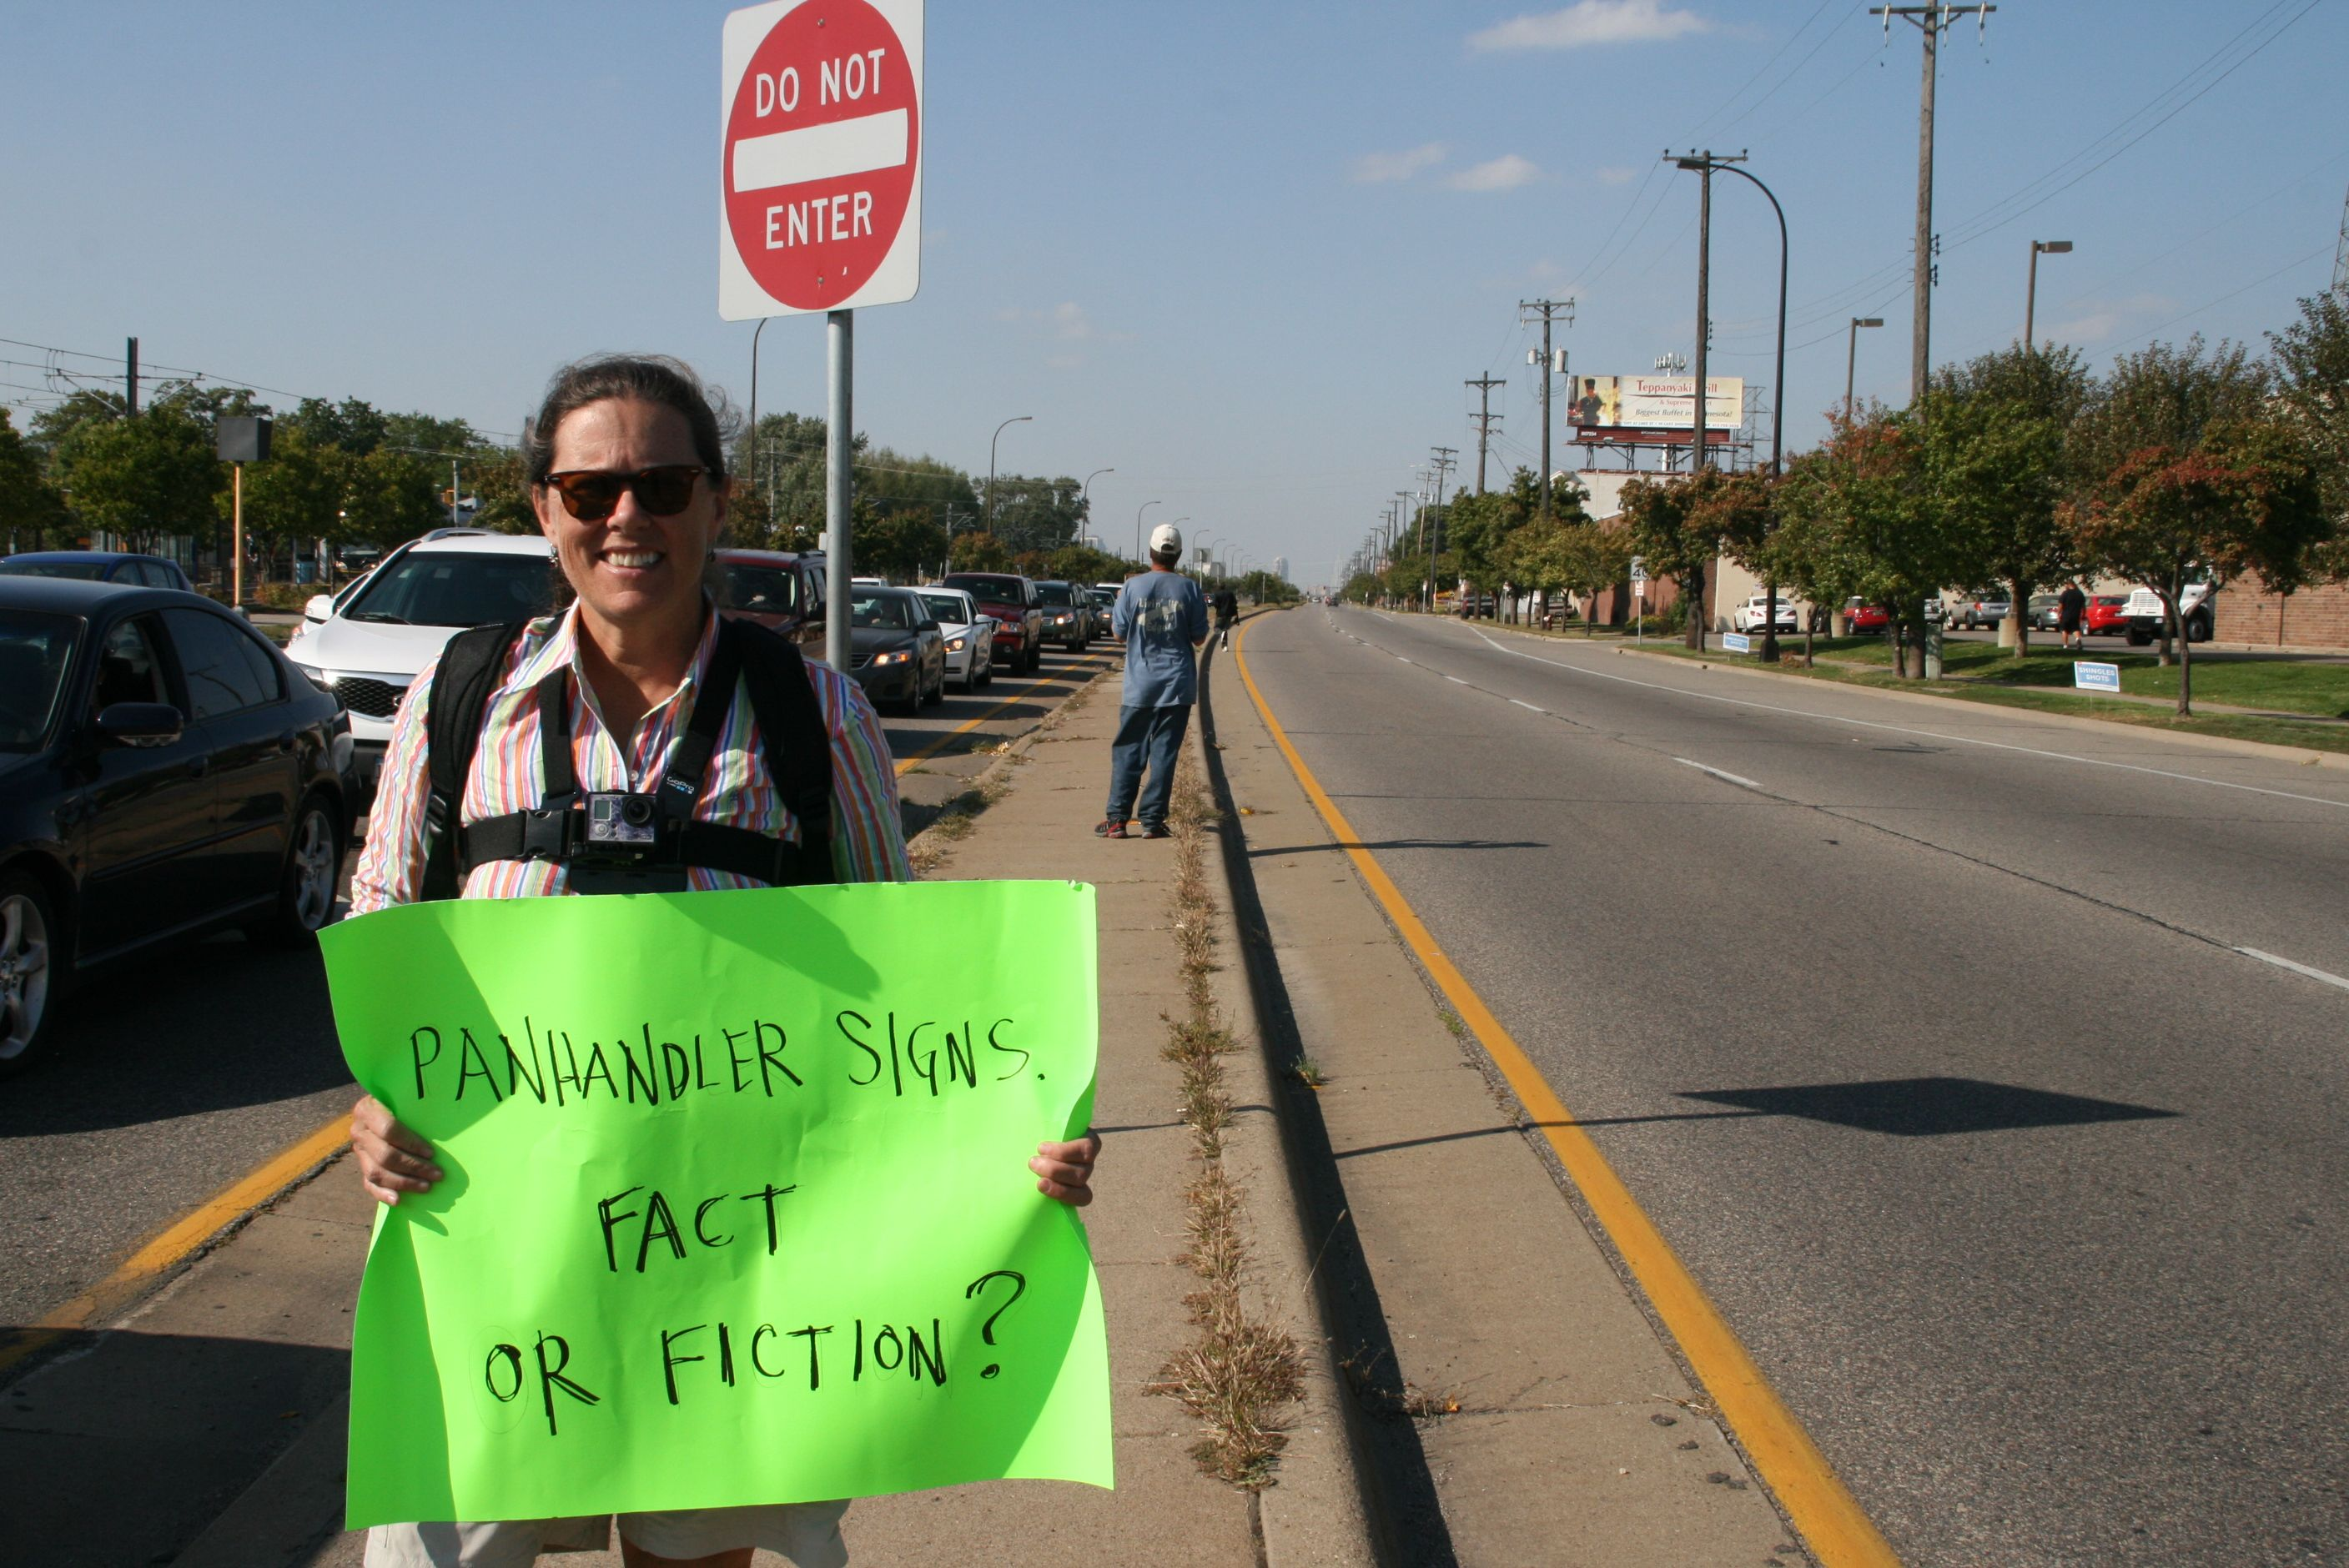 nancy_ford_holds_her_sign_a_few_yards_away_from_a_panhandler._she_has_beenprotesting_10_to_15_hours_a_week_since_early_august